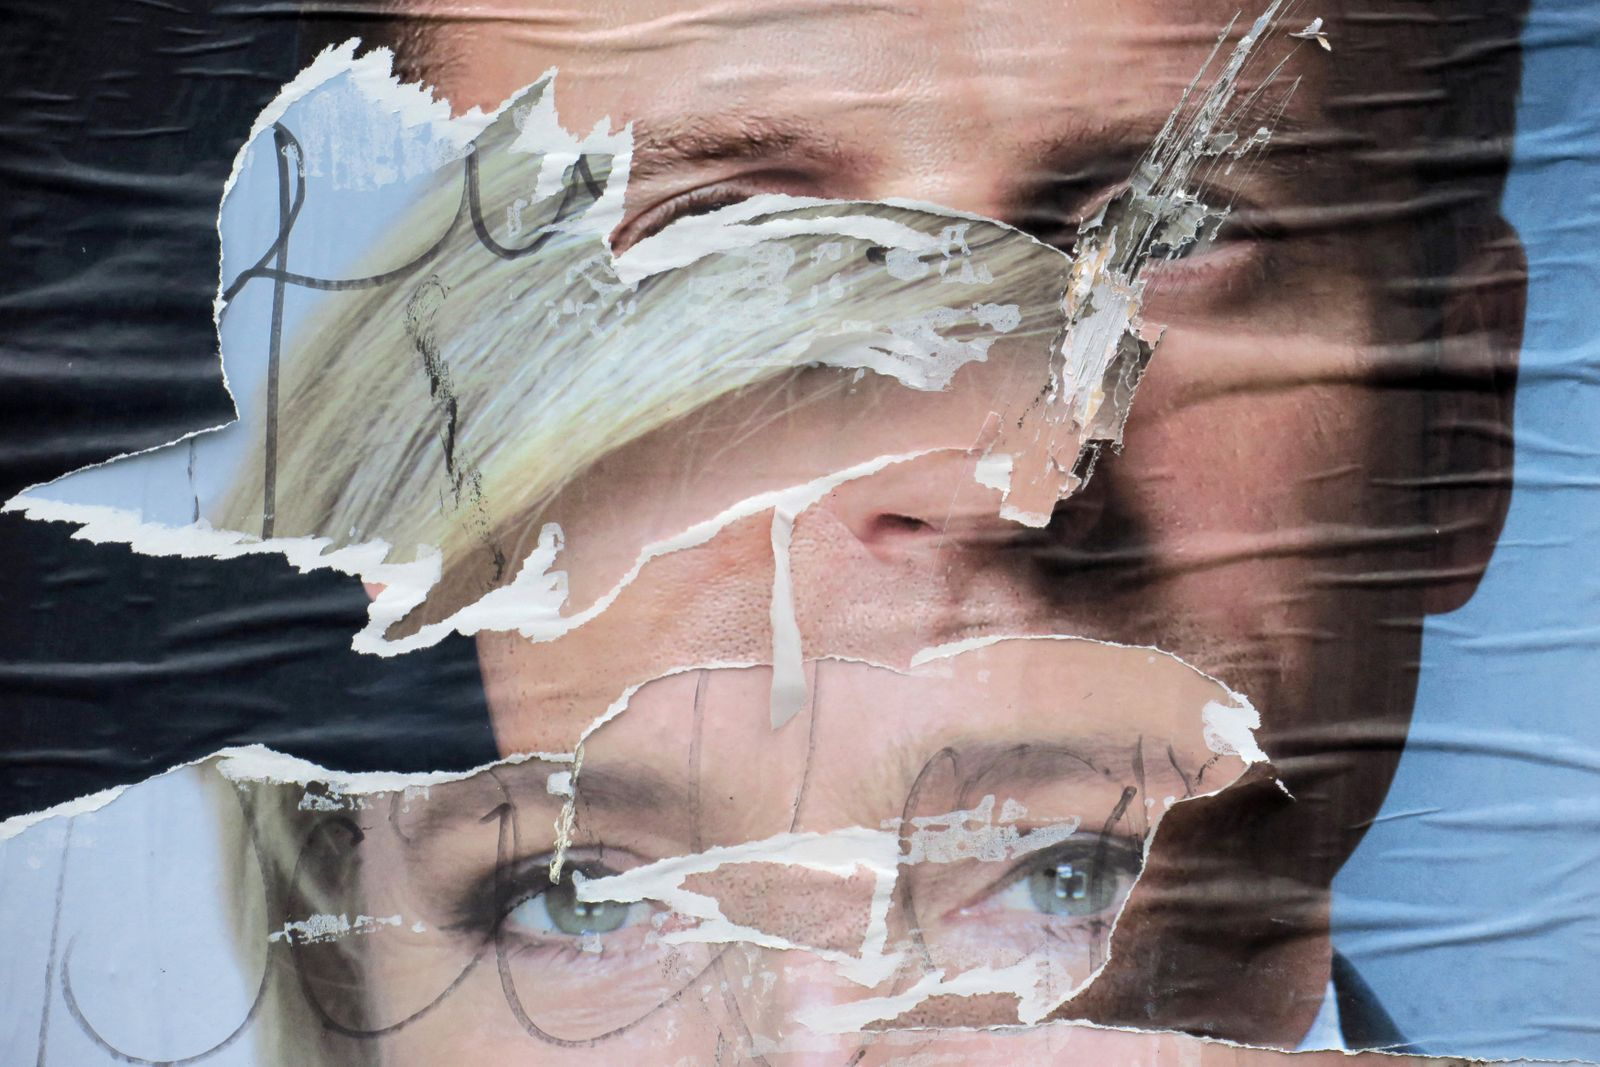 Torn and overlapping official posters of candidates for the 2017 French presidential election Marine Le Pen, of French National Front (FN) political party, and Emmanuel Macron, head of the political movement En Marche !, or Onwards !, in Cambrai